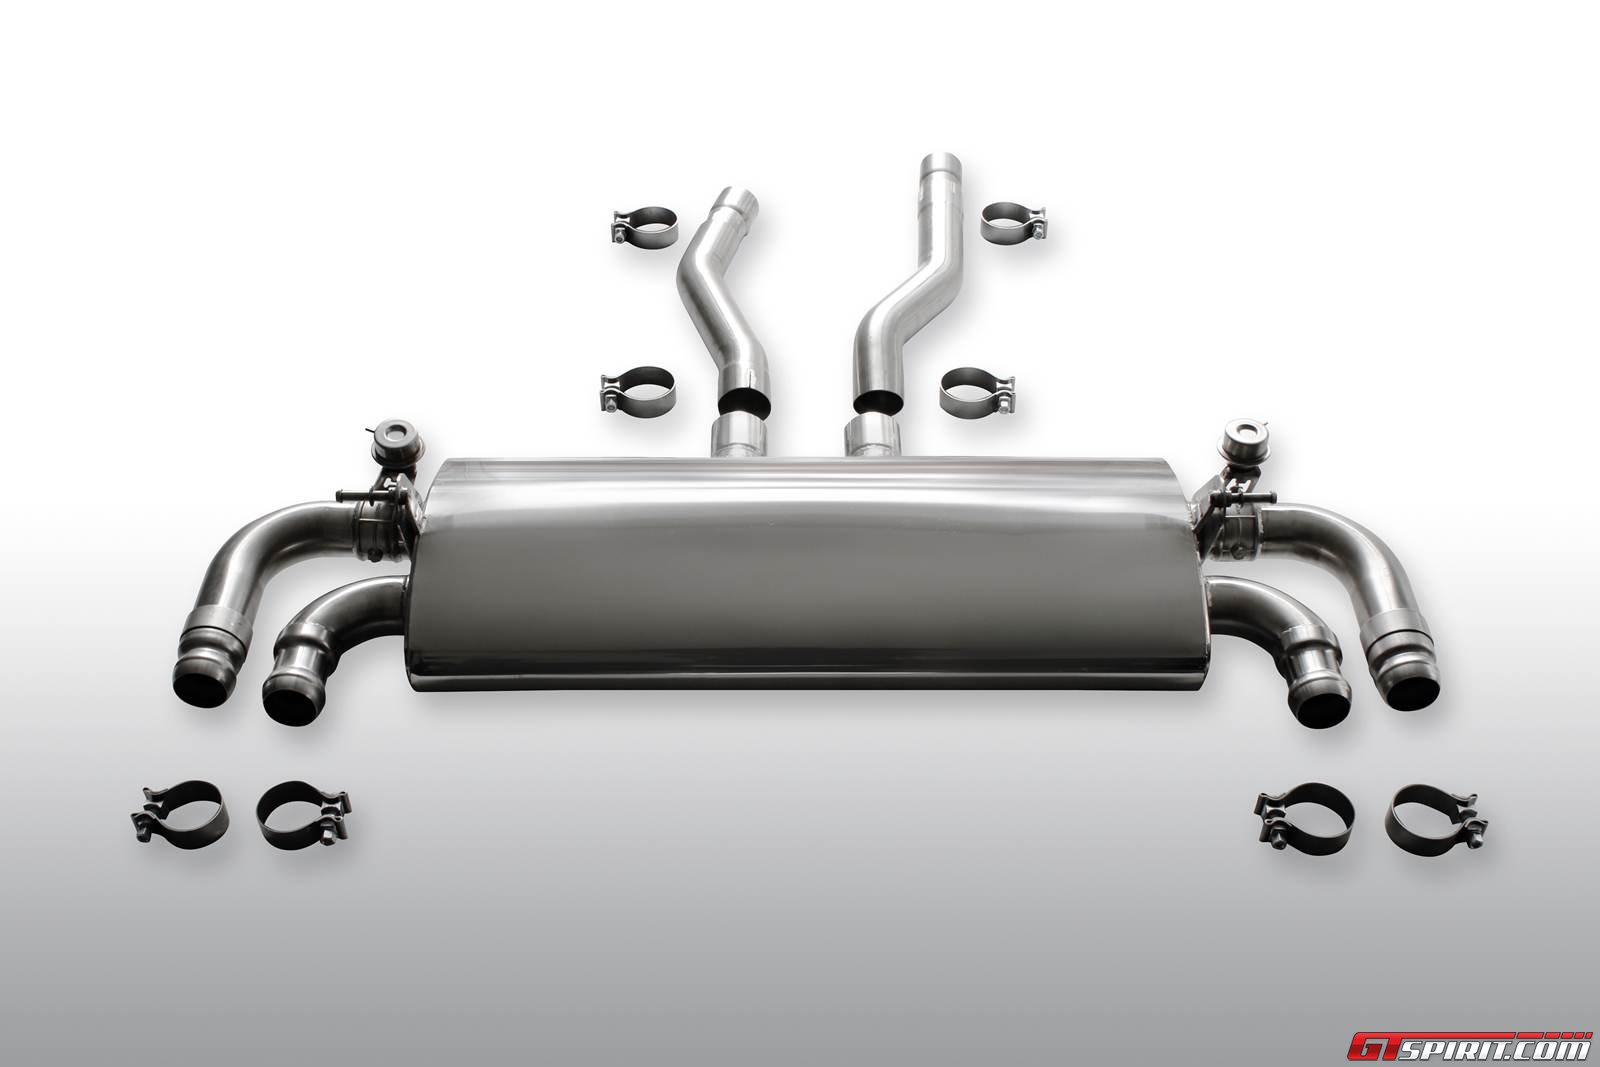 http://www.gtspirit.com/wp-content/gallery/official-gemballa-offers-variable-exhaust-system-for-porsche-cayenne/pr_gemballa_gmbh_g58_exhaust_system_valve_controlled_1.jpg